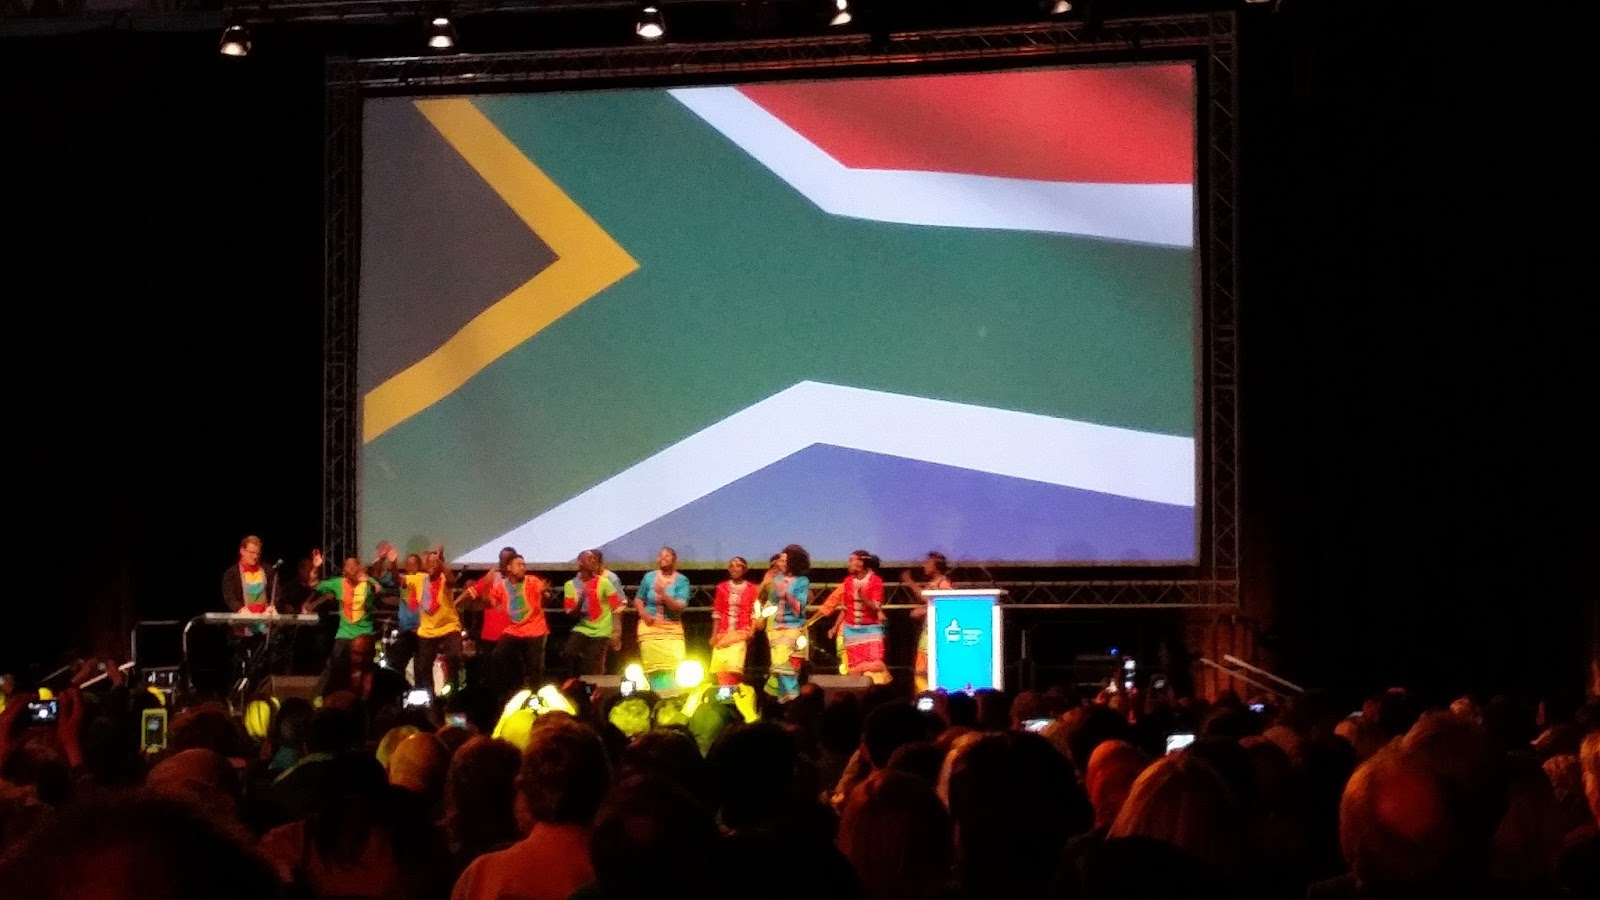 Ifla Wlic 2015 Cape Town Peer Support From Around The World  Ifla First  Timer's View